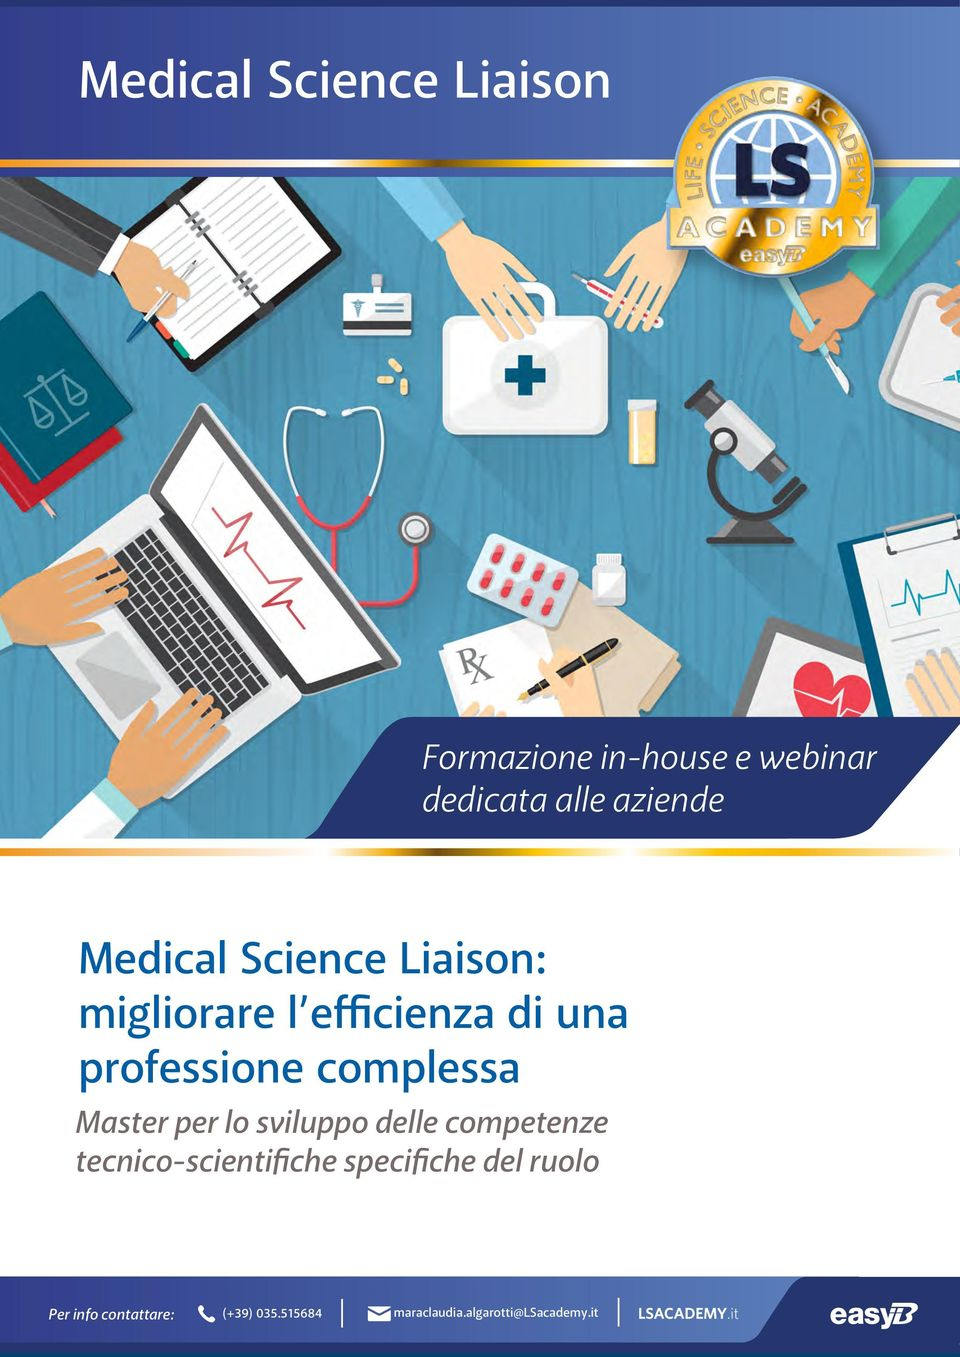 Master per l svilupp delle cmpetenze tecnic-scientifiche specifiche del